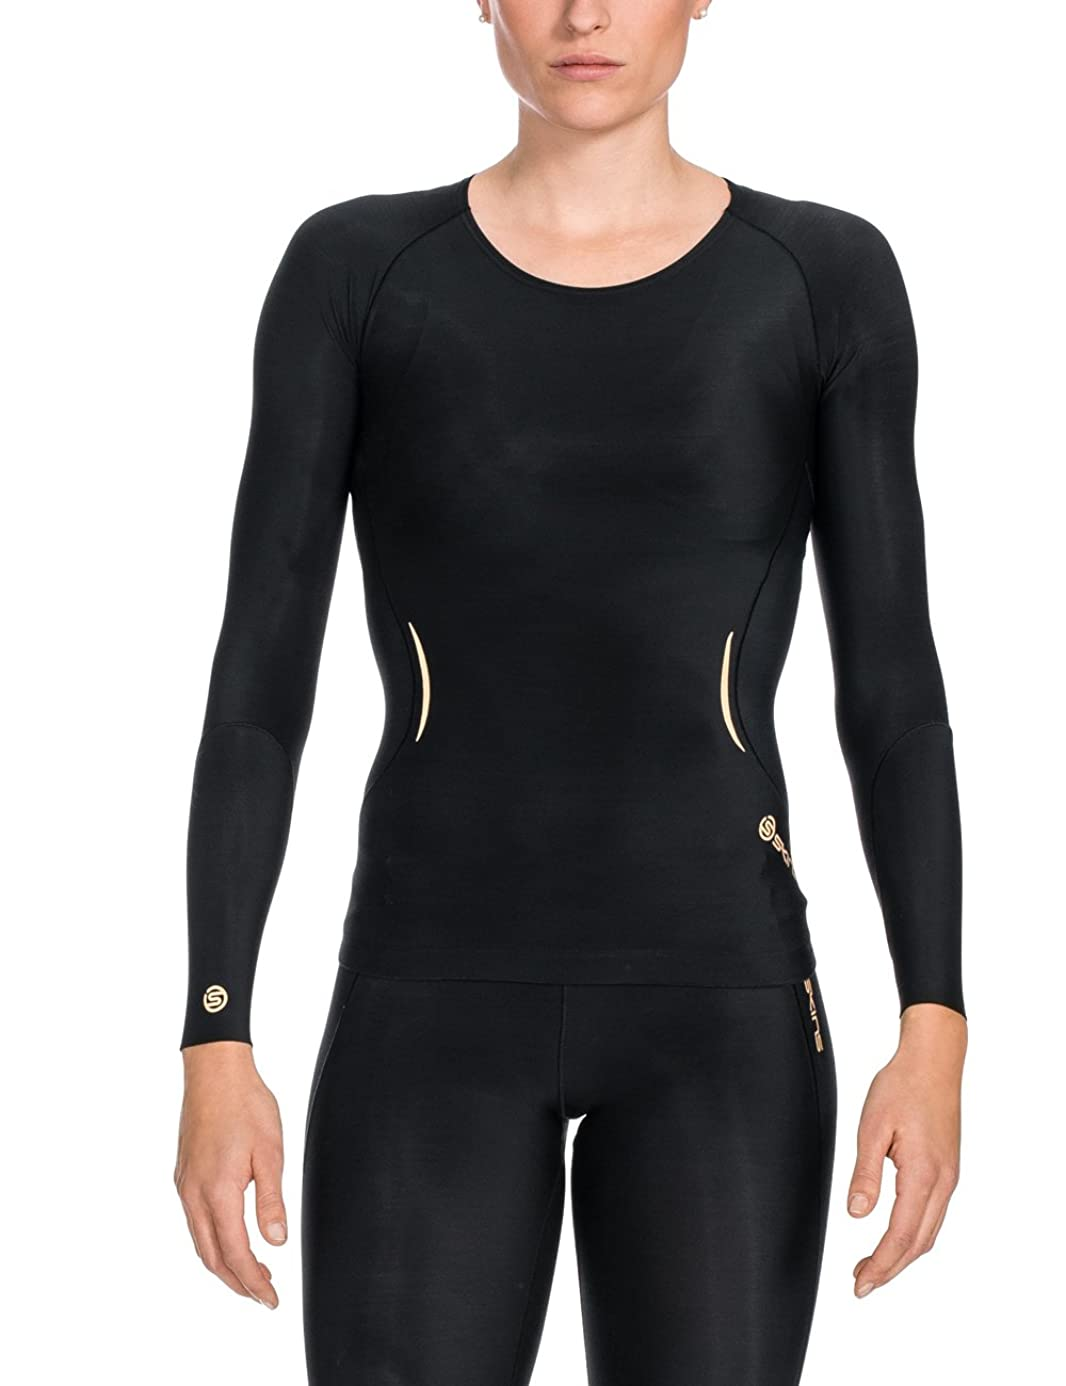 Skins Women's A400 Long Sleeve Compression Top